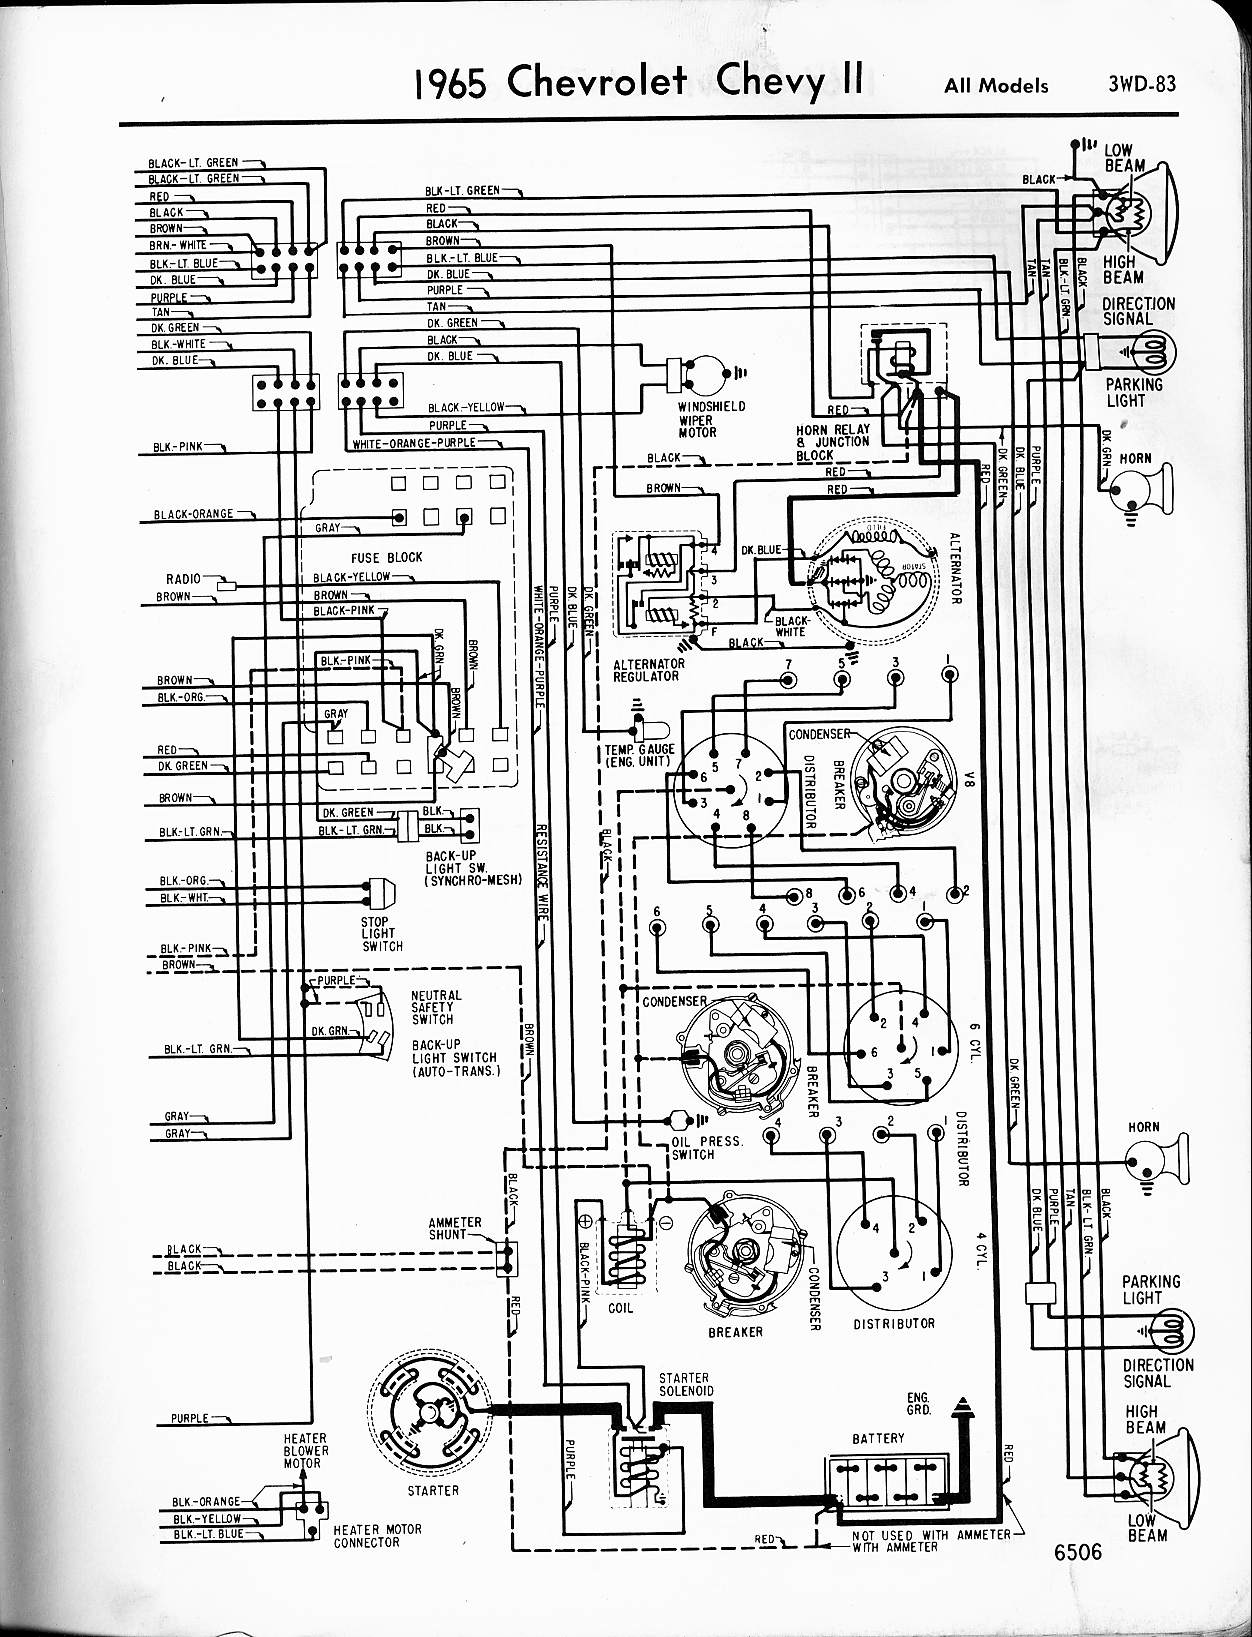 MWireChev65_3WD 083 chevy diagrams 1964 falcon wiring diagram at aneh.co